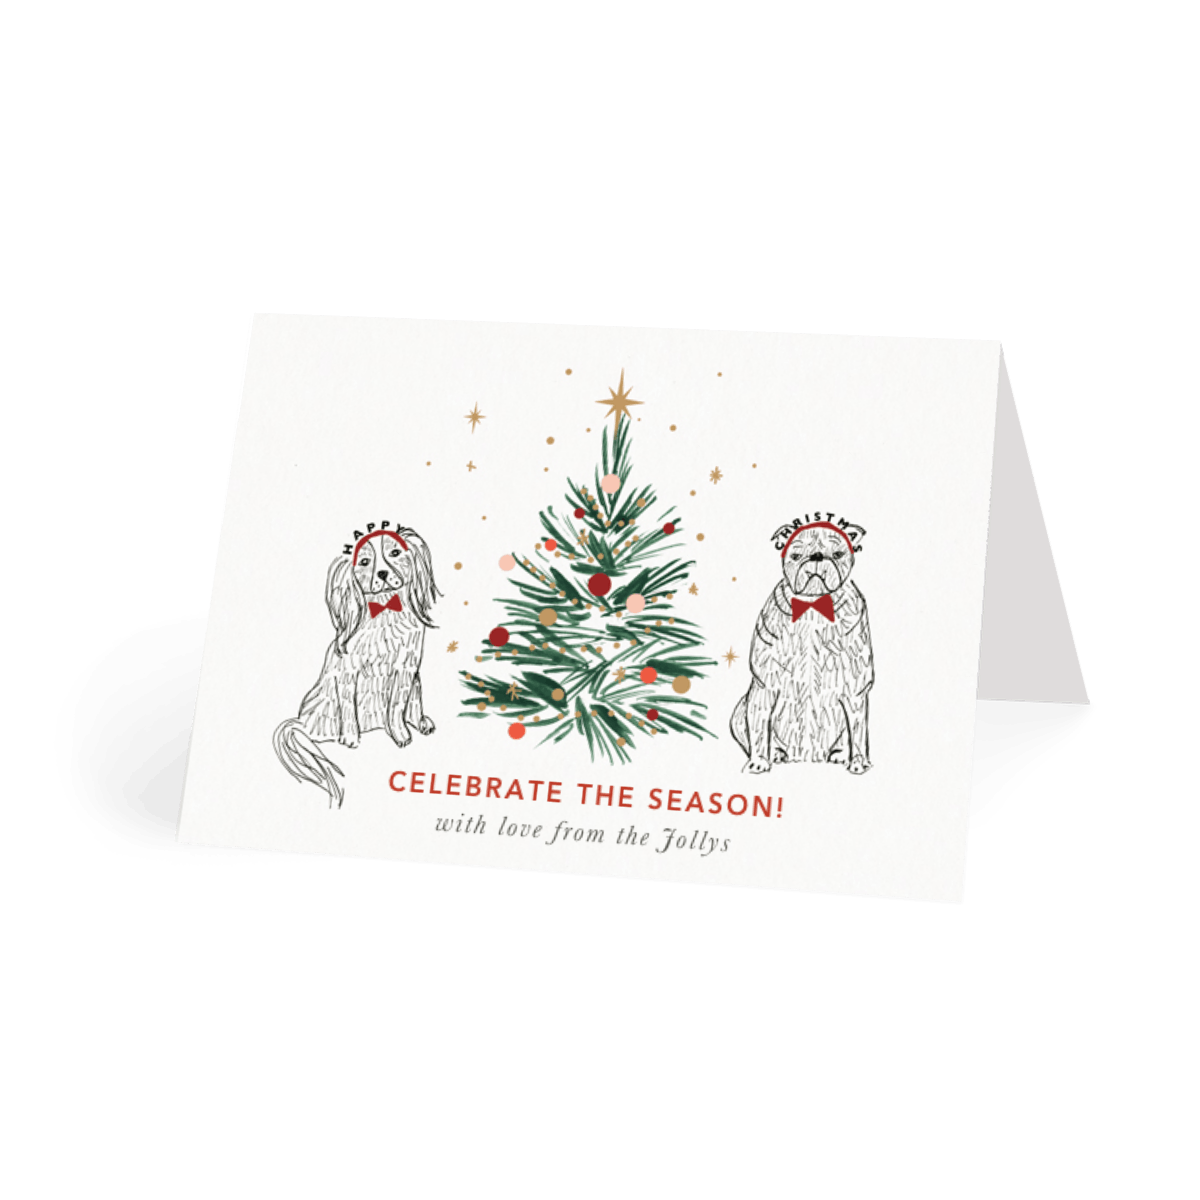 Https%3a%2f%2fwww.papier.com%2fproduct image%2f91840%2f14%2fhappy christmas dogs 22921 front 1572354943.png?ixlib=rb 1.1